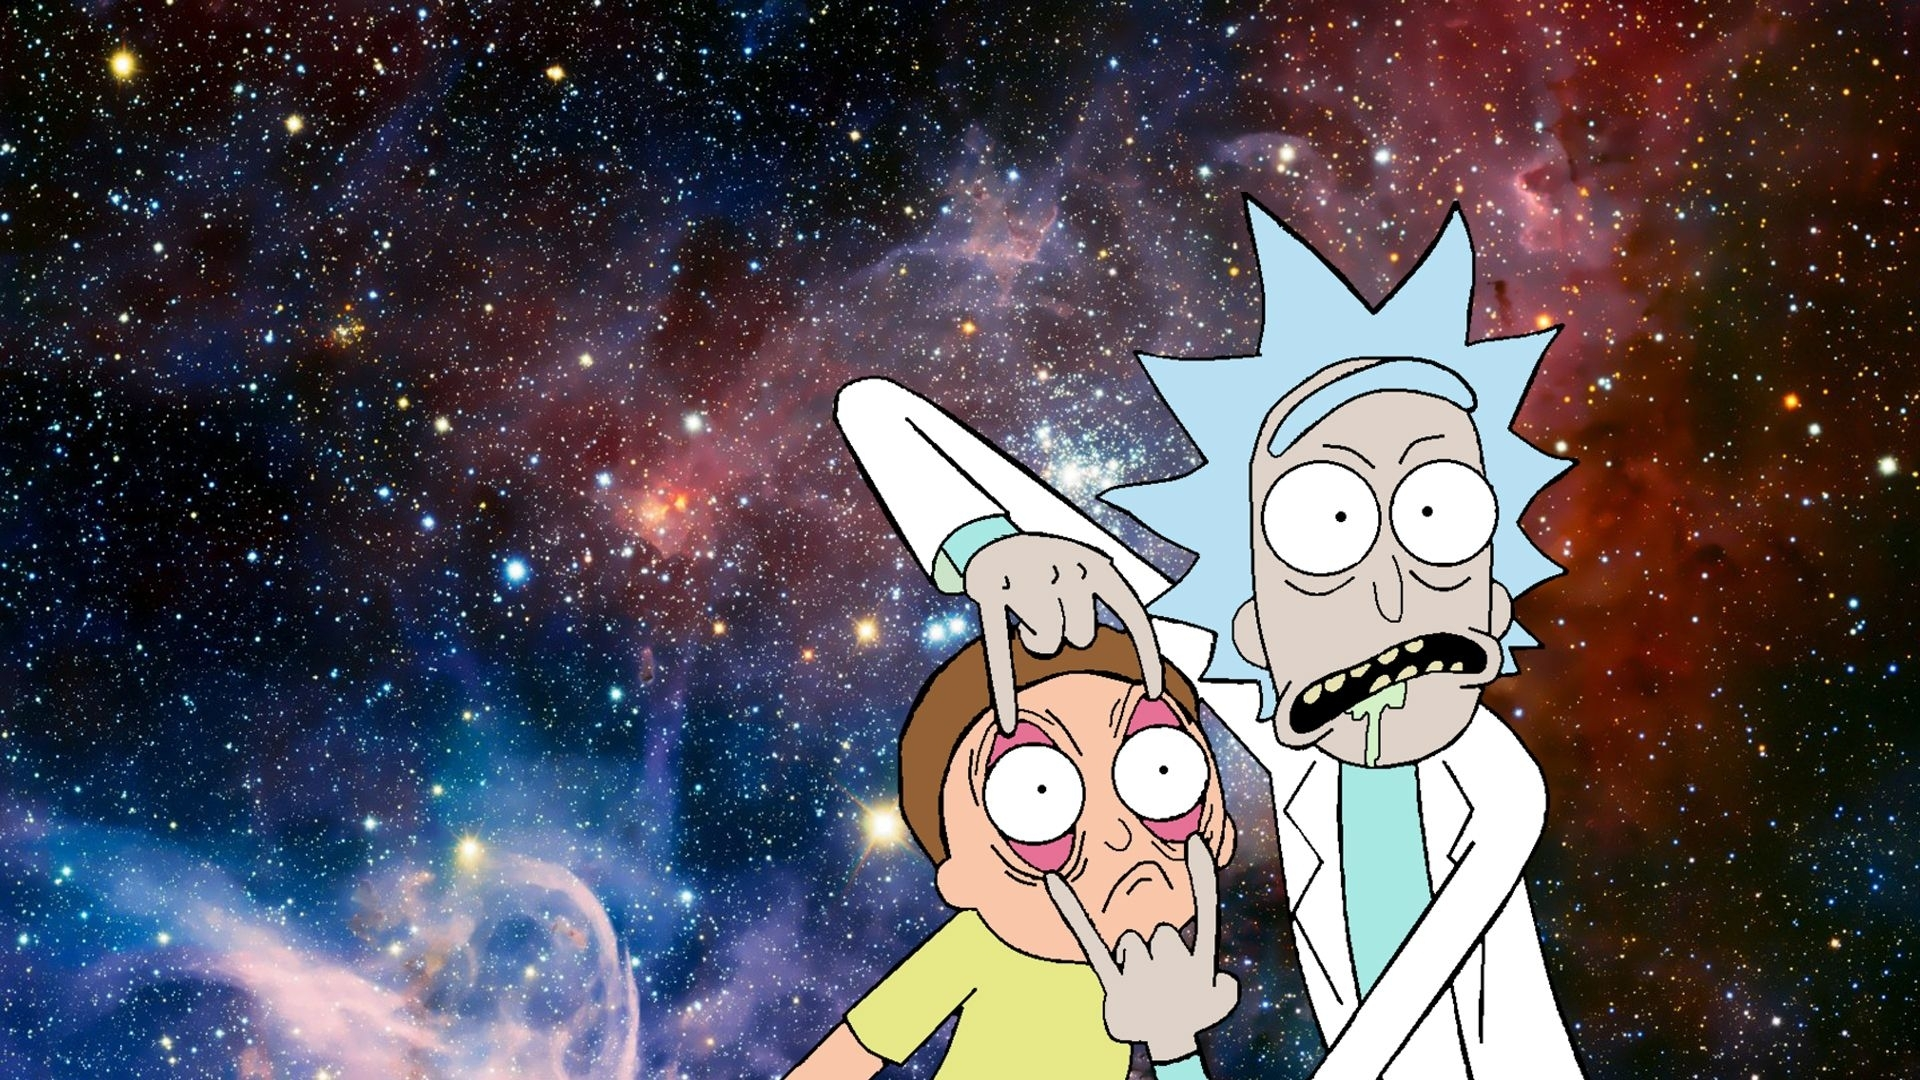 rick and morty wallpapers - album on imgur